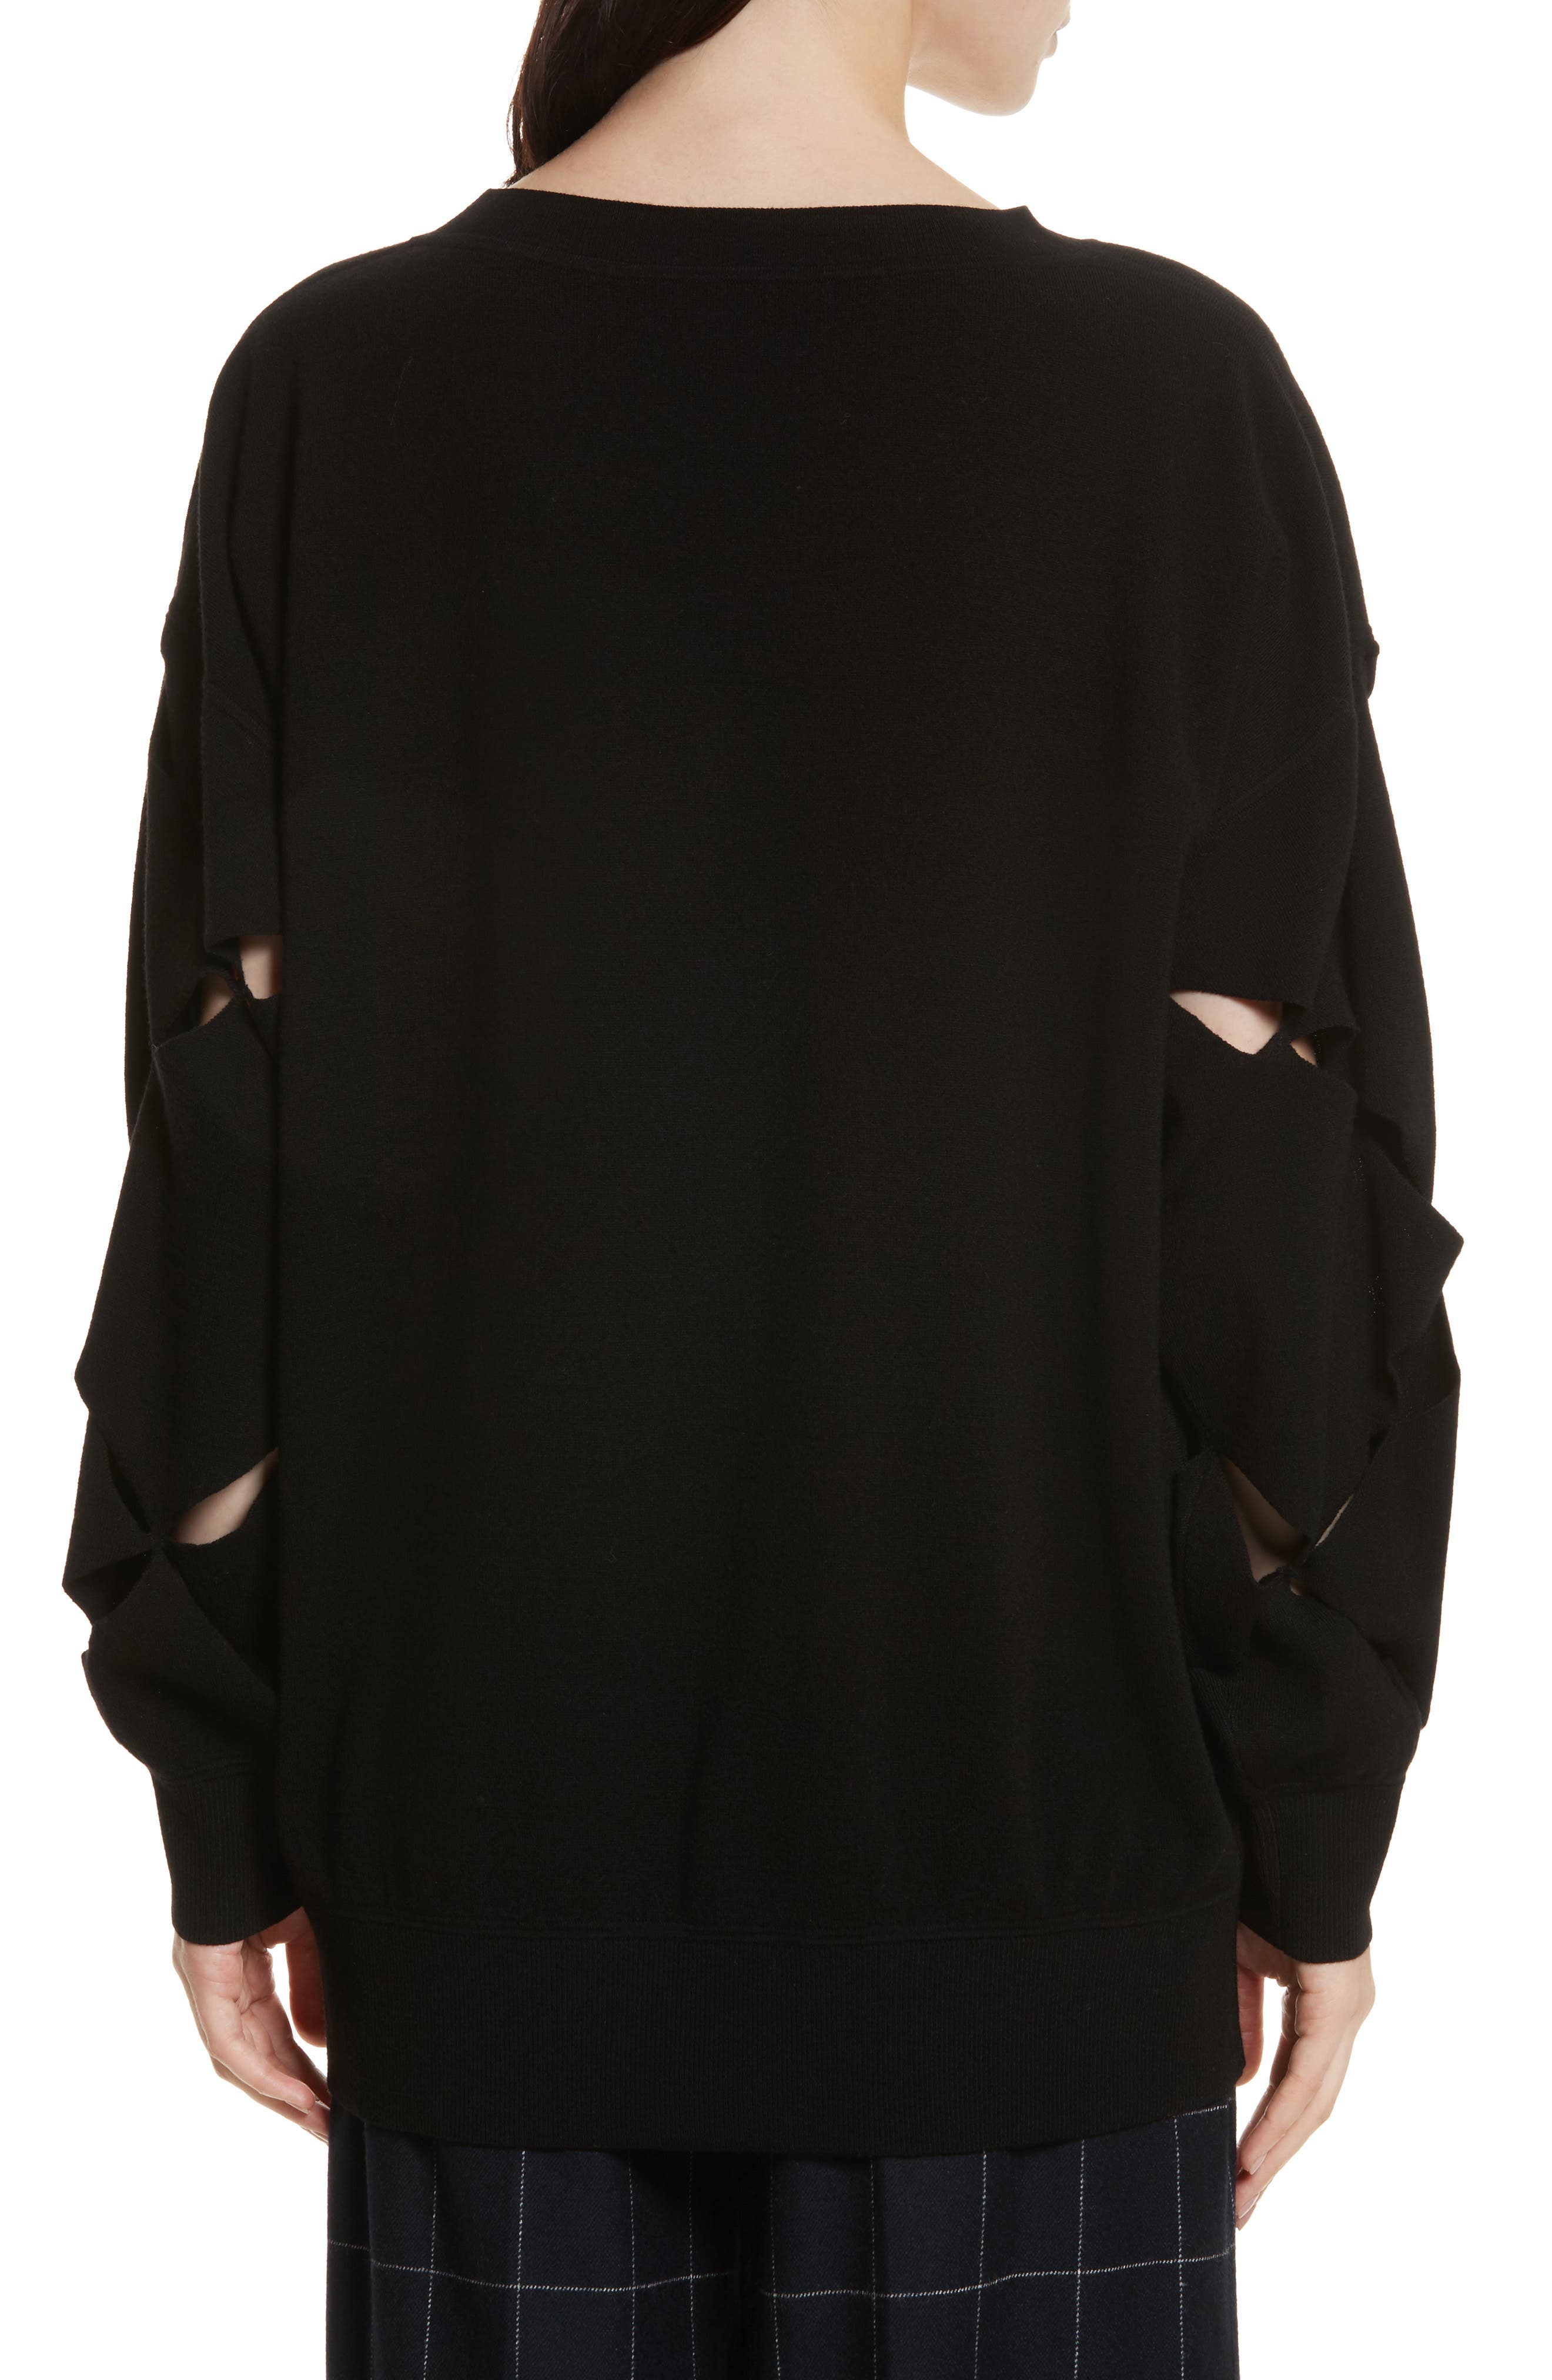 Roz Cutout Sweater,                             Alternate thumbnail 2, color,                             001